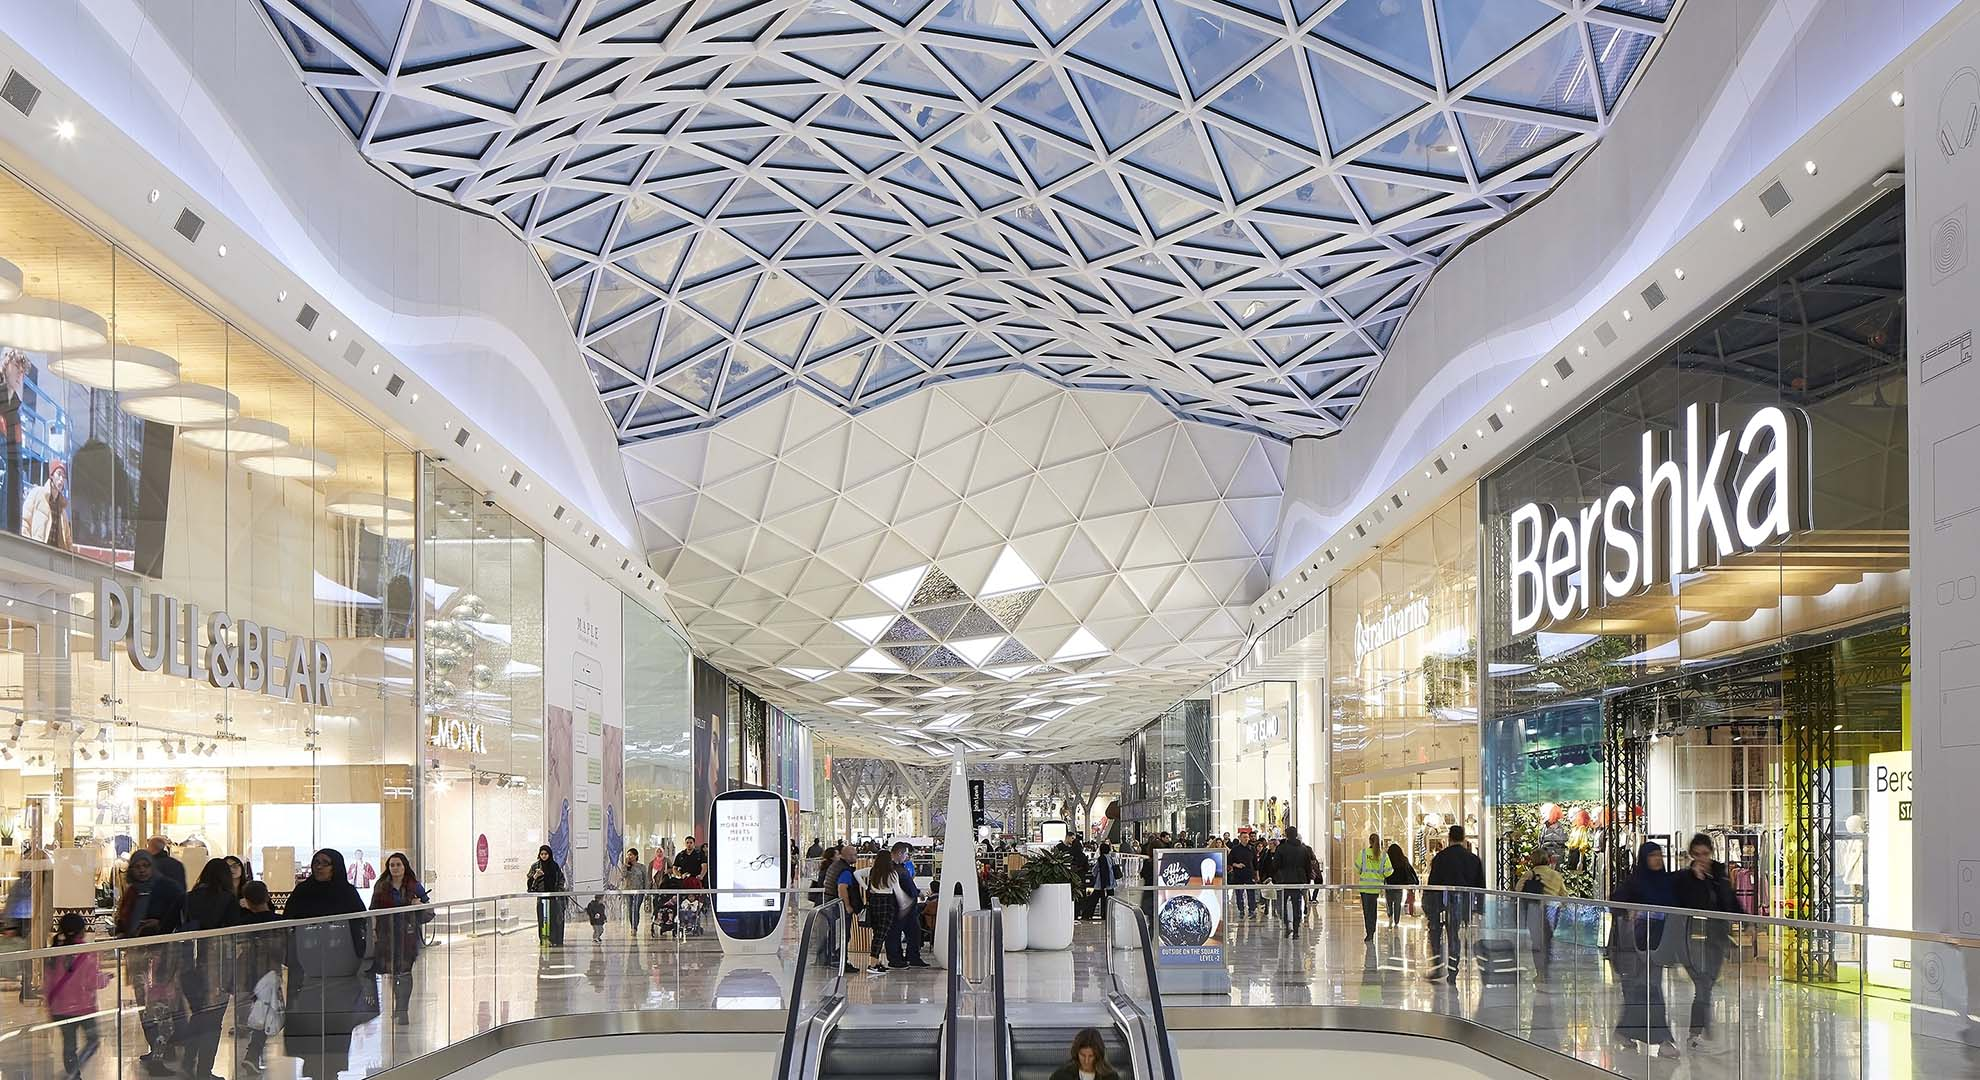 Westfield City is an example of the new retail spaces